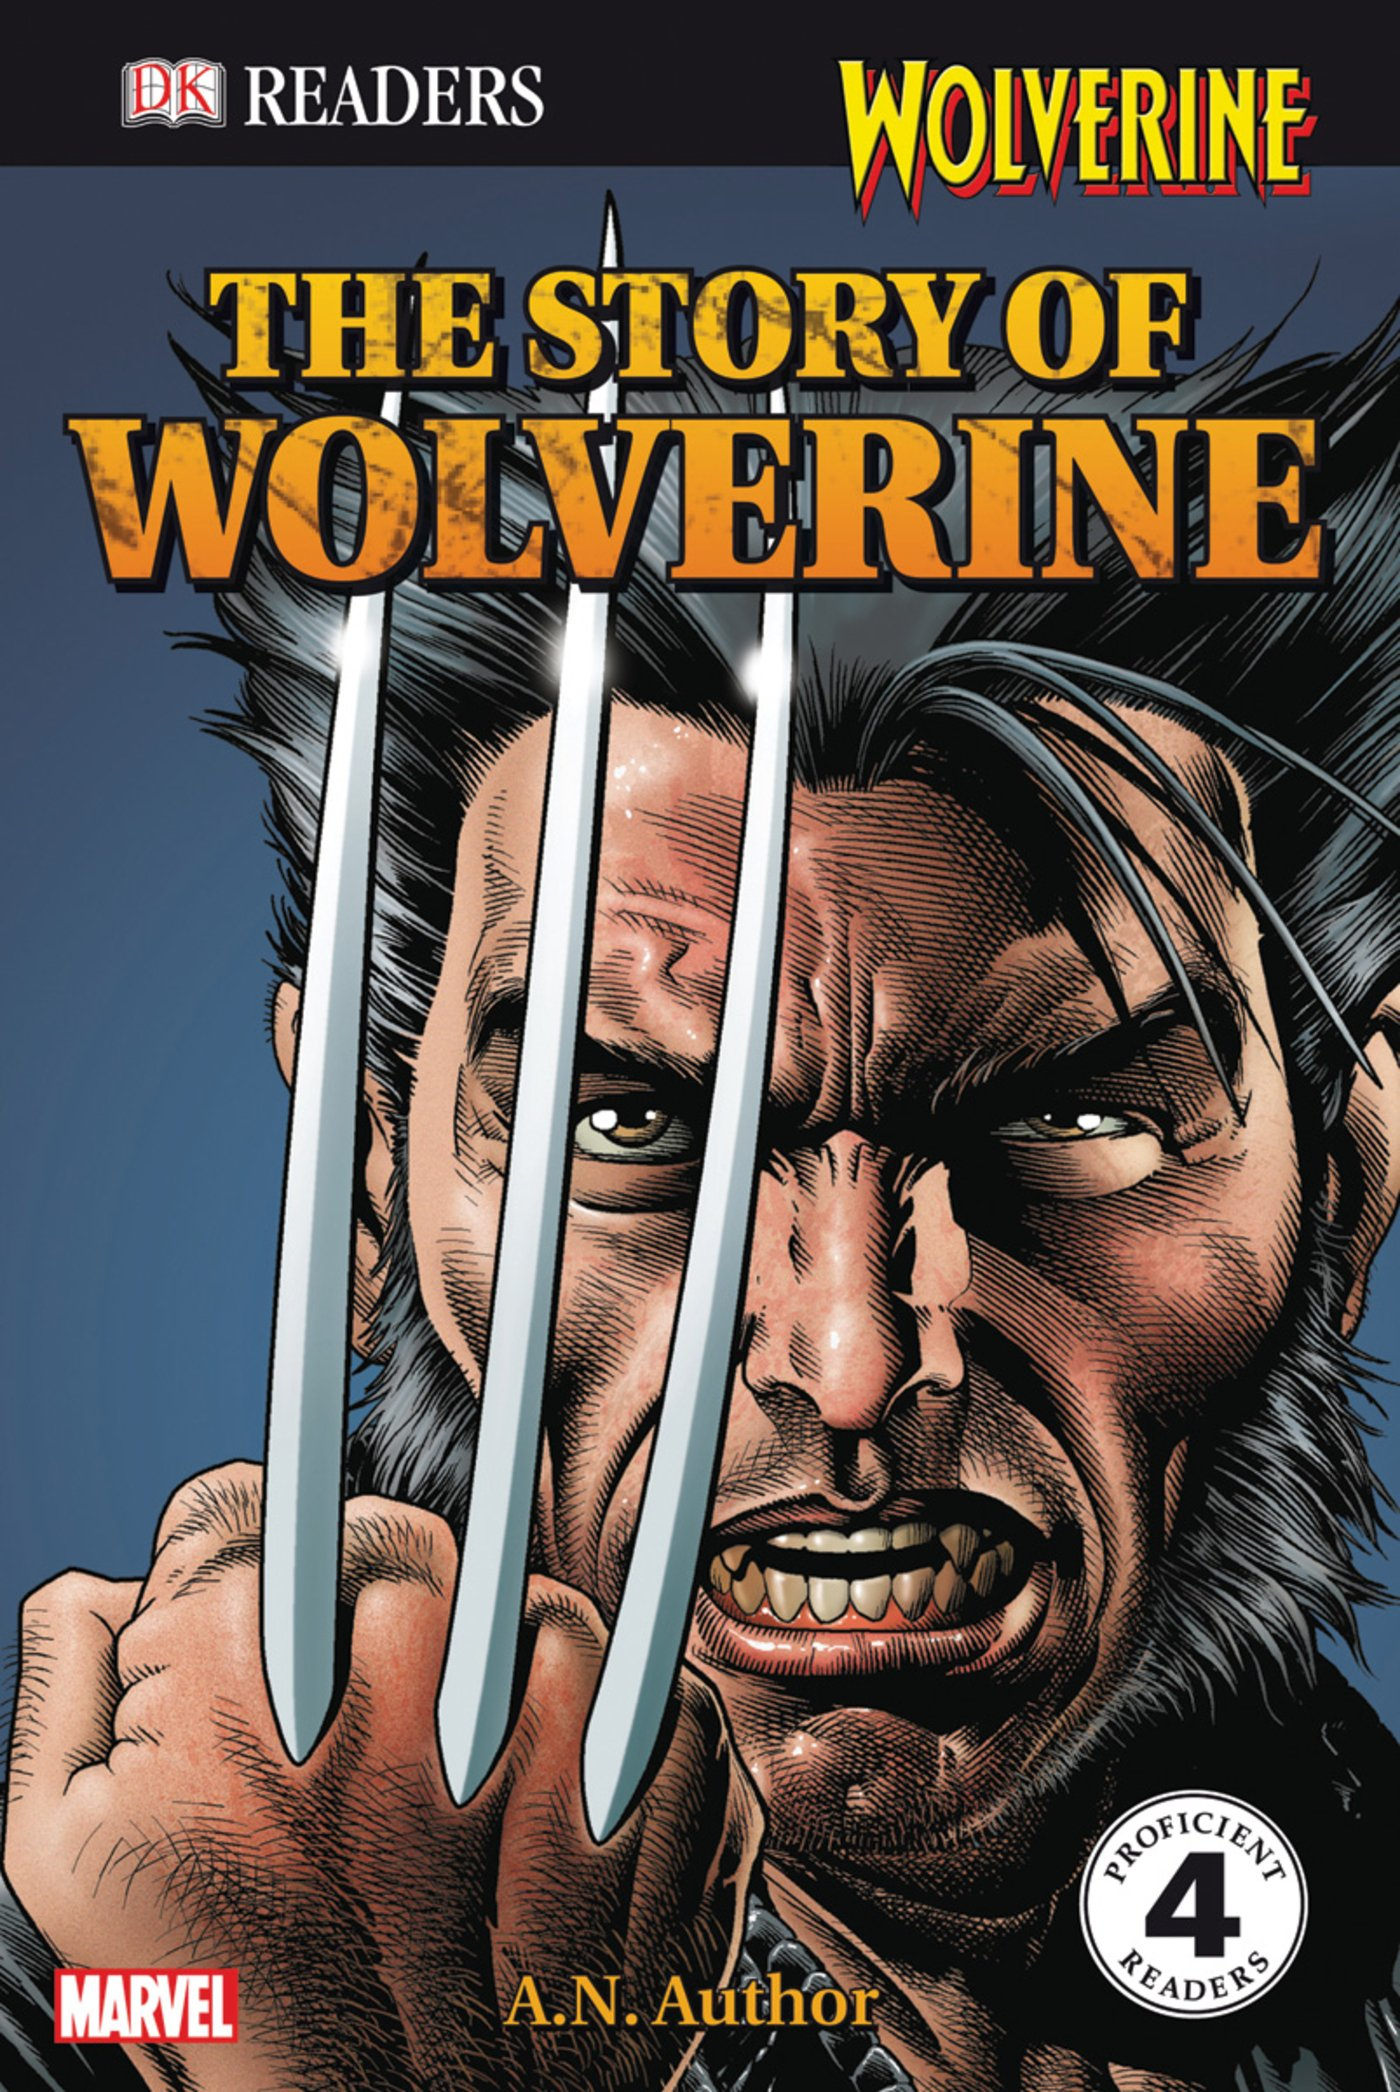 The Story of Wolverine (DK READERS) by Brand: DK Publishing